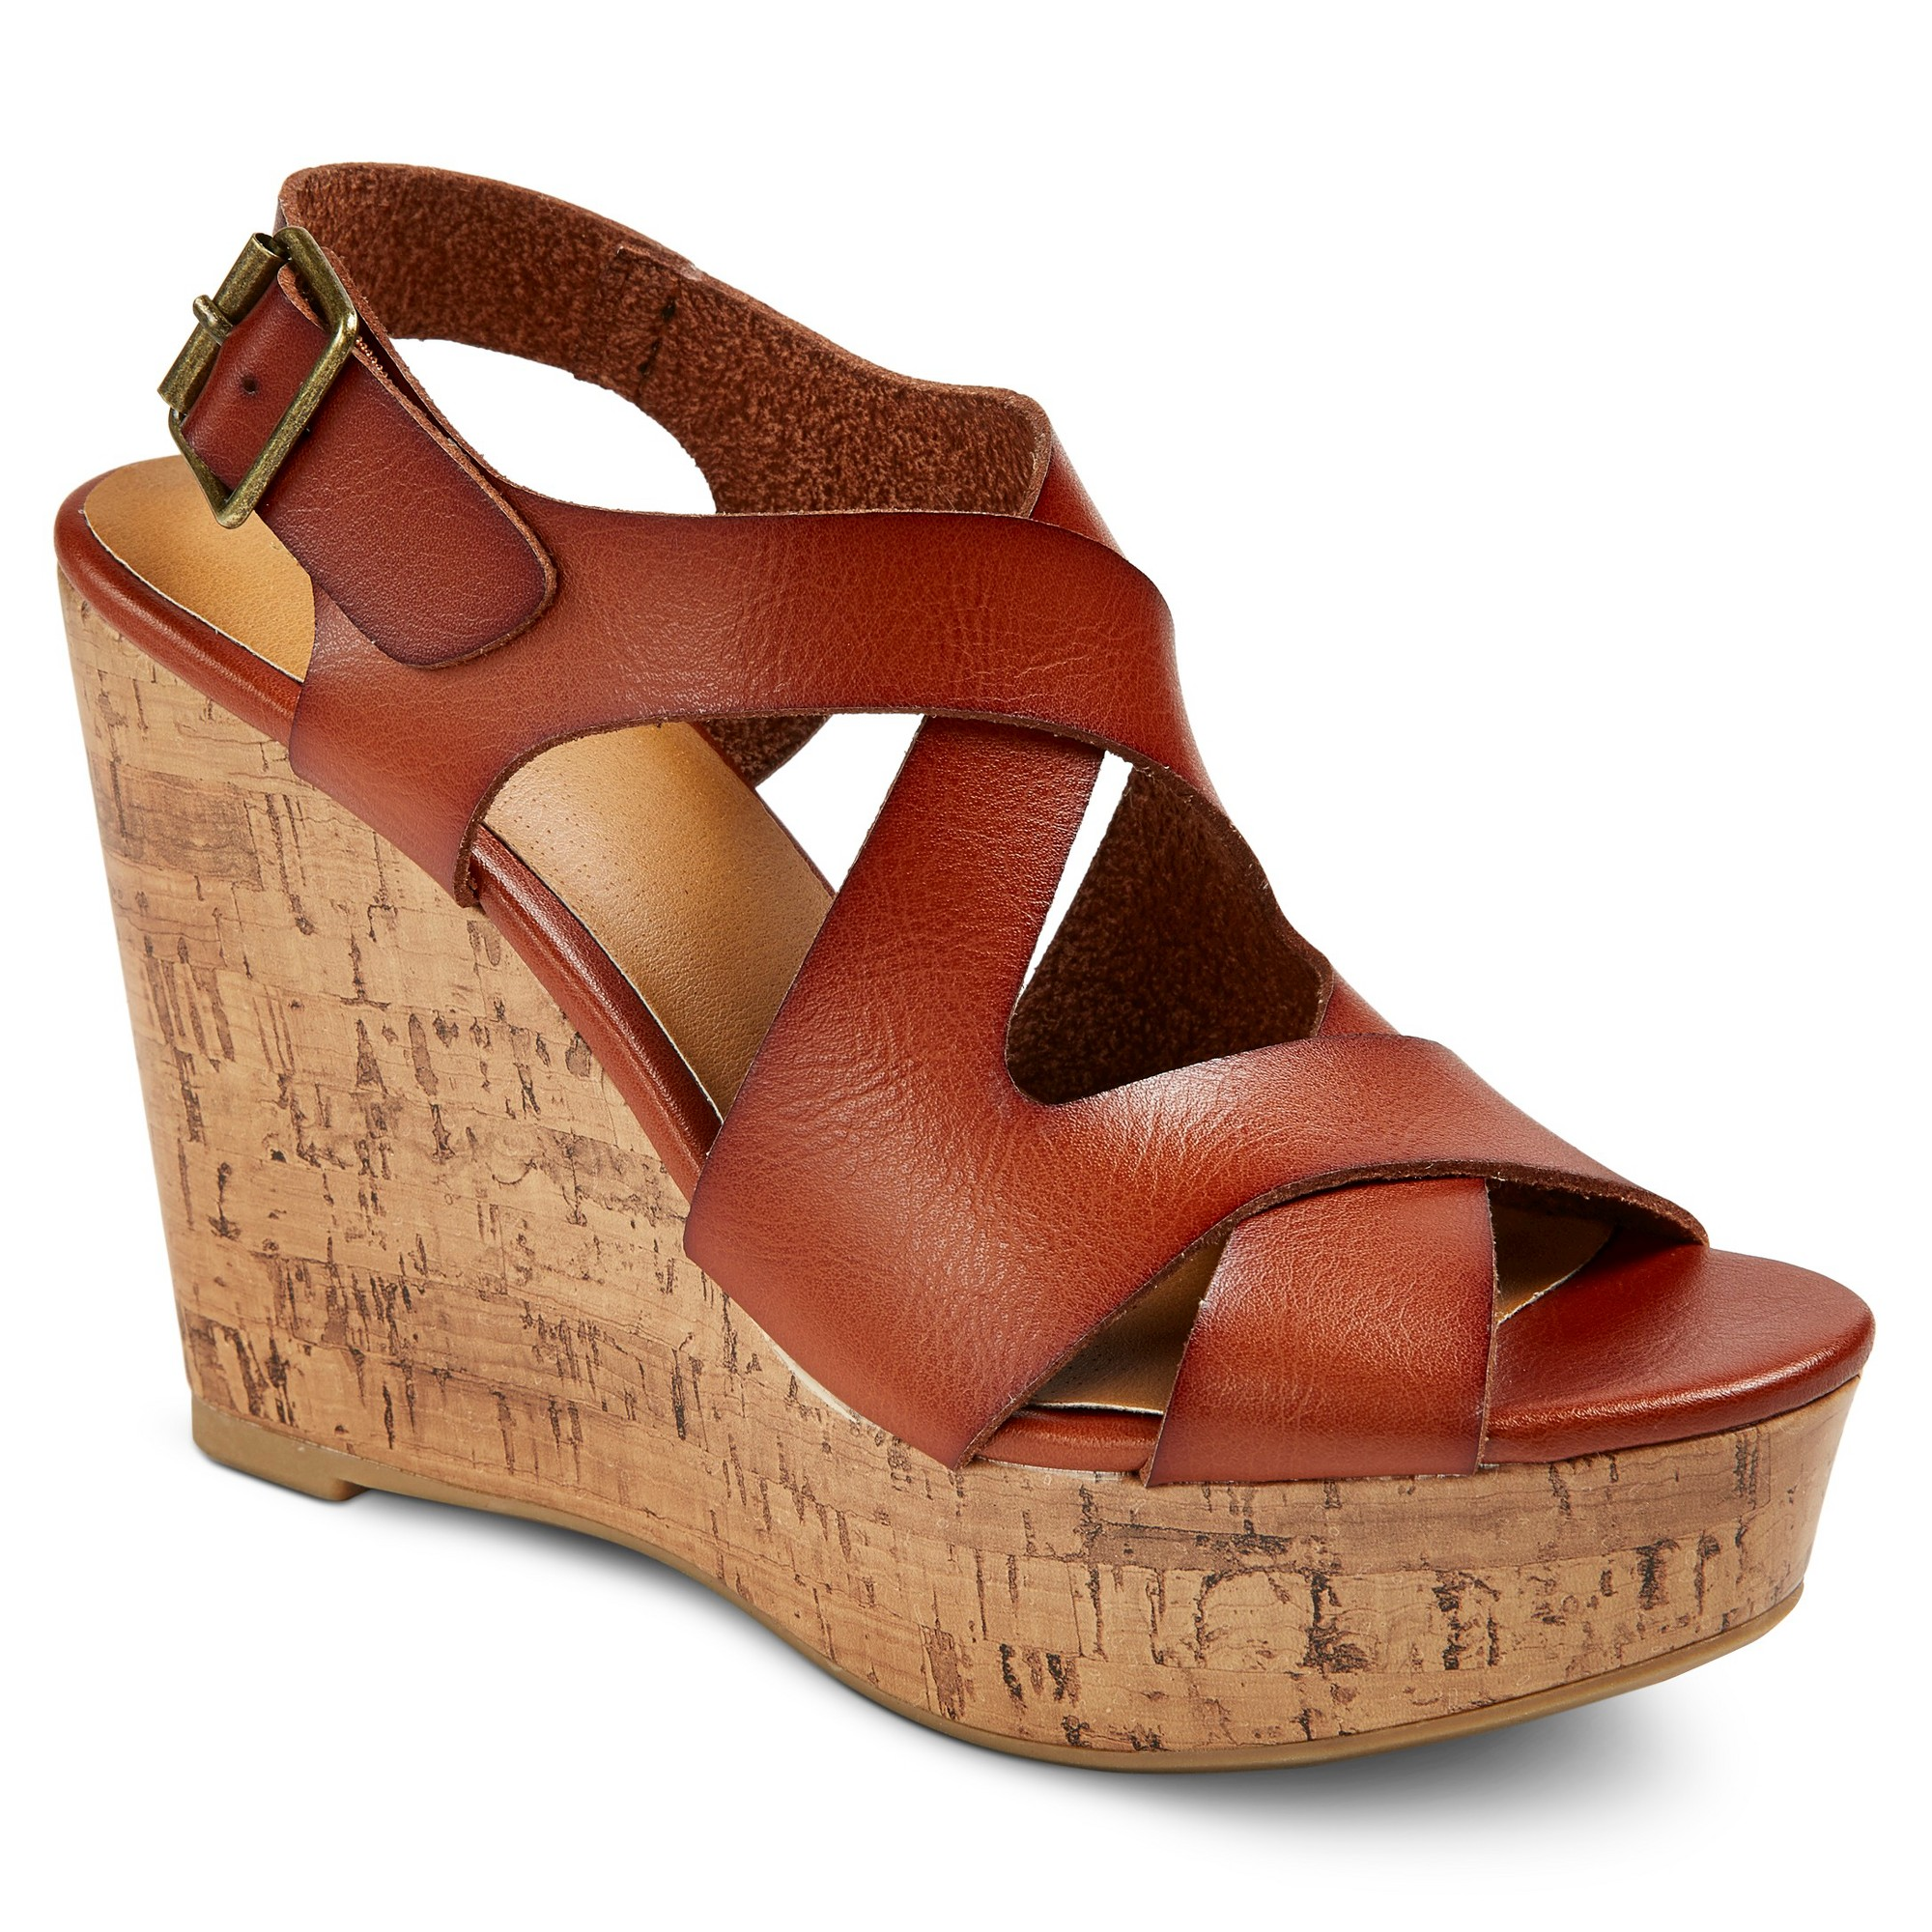 3ab48235ded0 Women s Wide Width Megan Quarter Strap Sandals - Mossimo Supply Co. Cognac  (Red) 11W